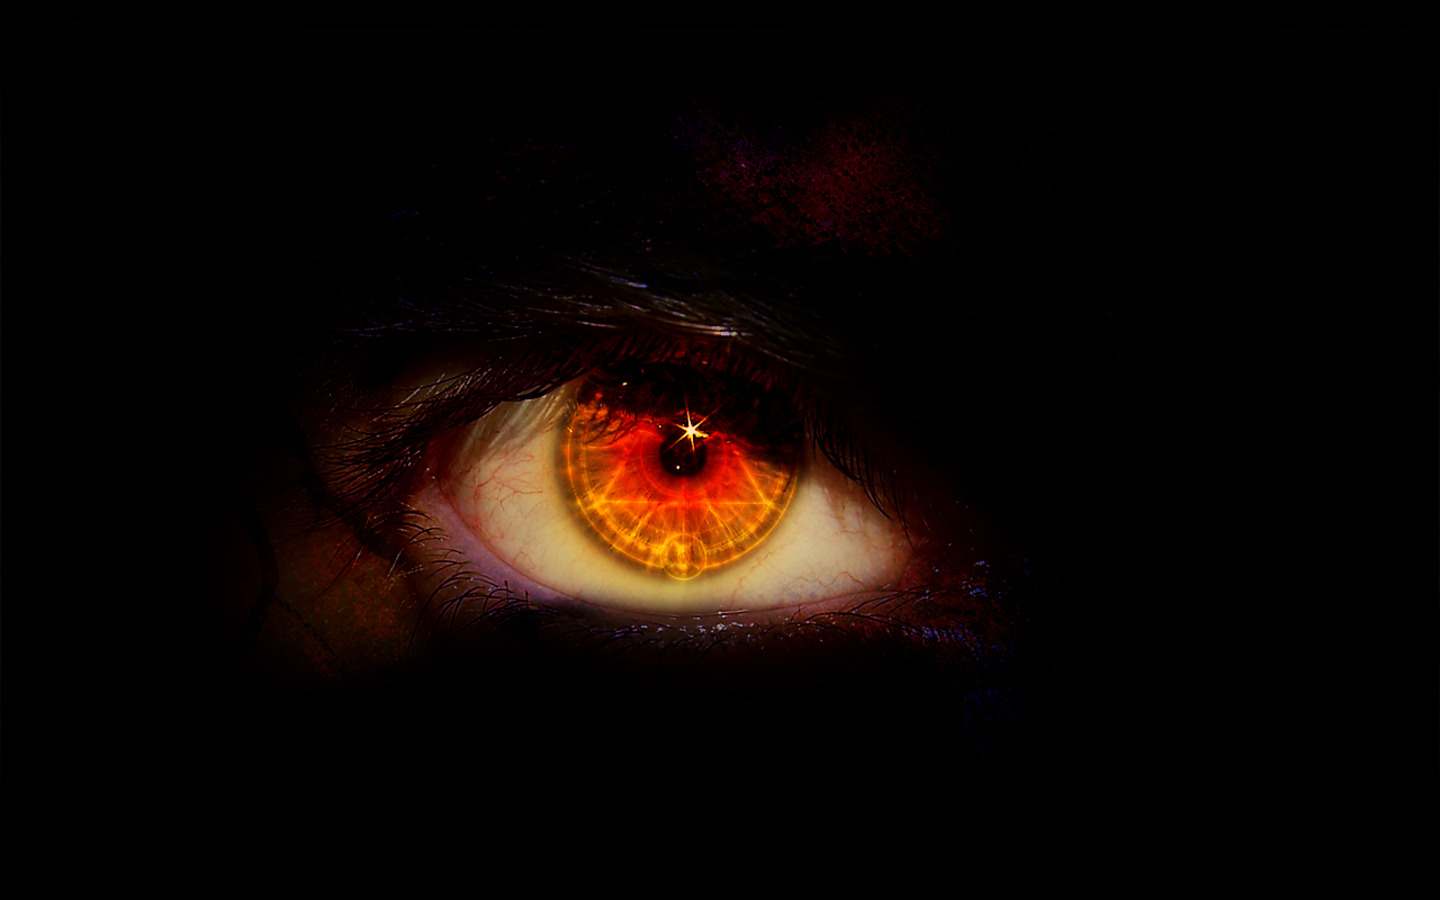 1000+ images about Eyes on Pinterest | Beautiful dark art, Search